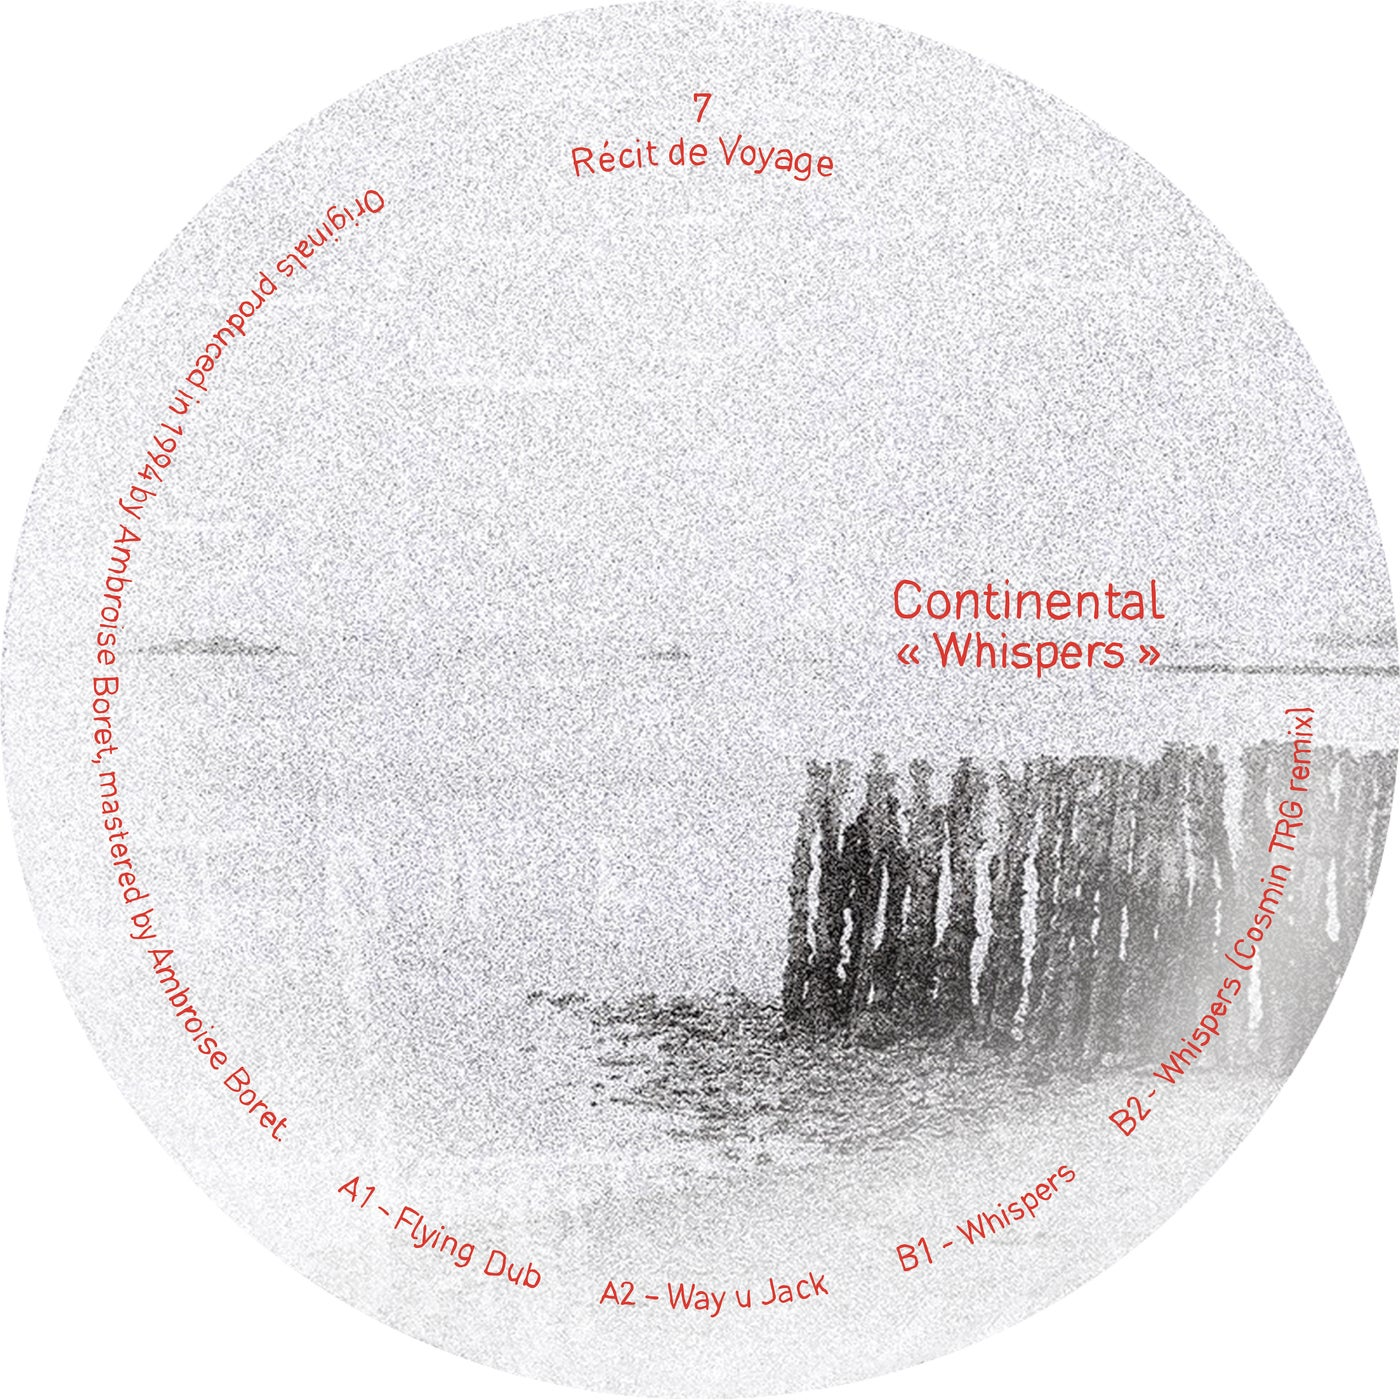 Continental - Whispers (2021)